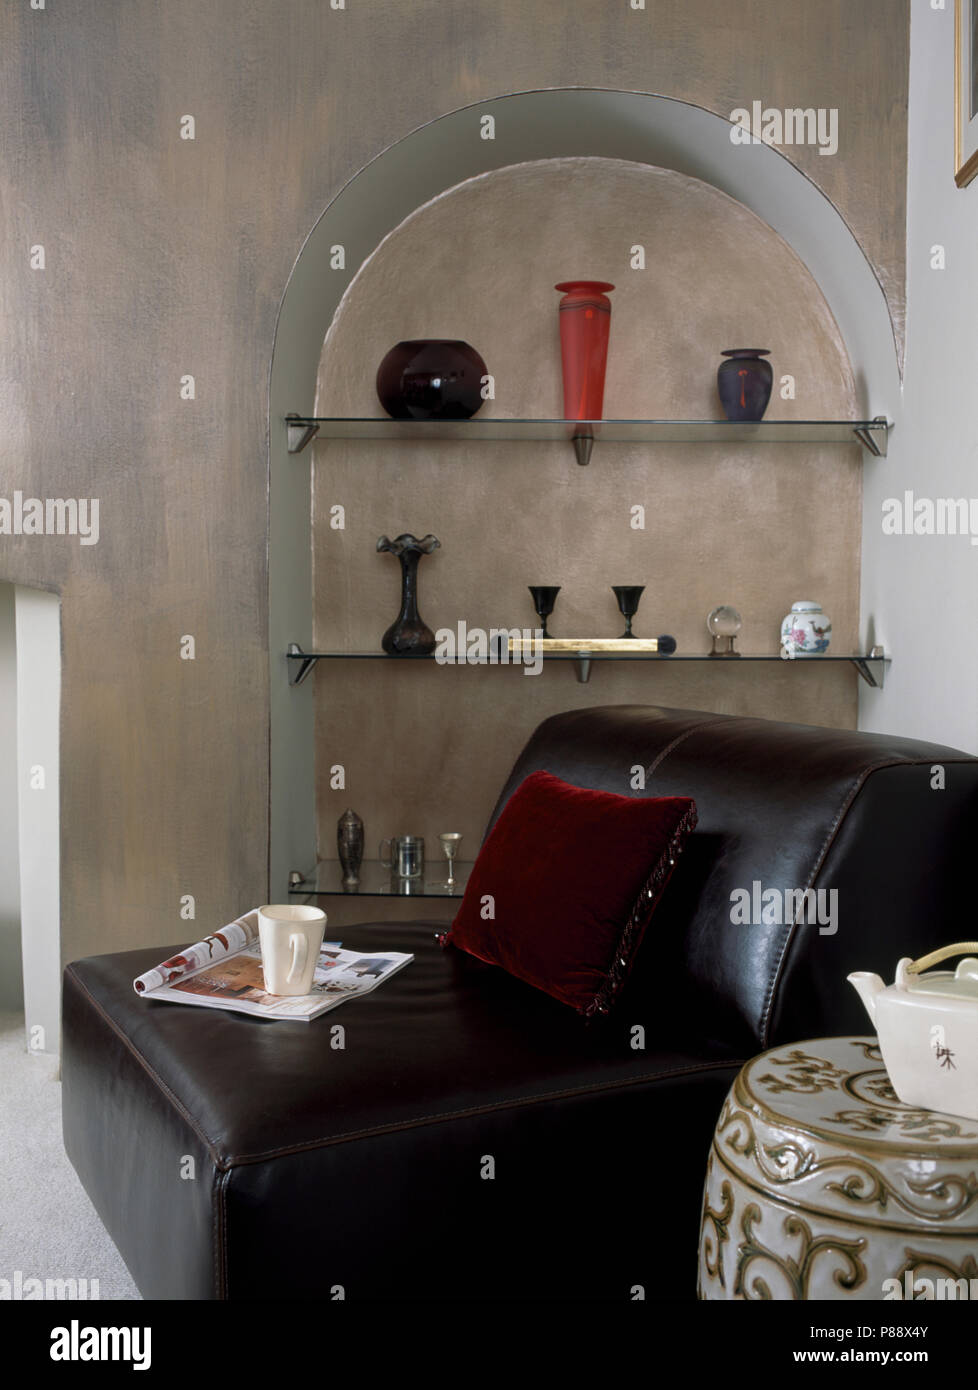 Black Leather Sofa In Front Of Alcove With Shelves In Modern